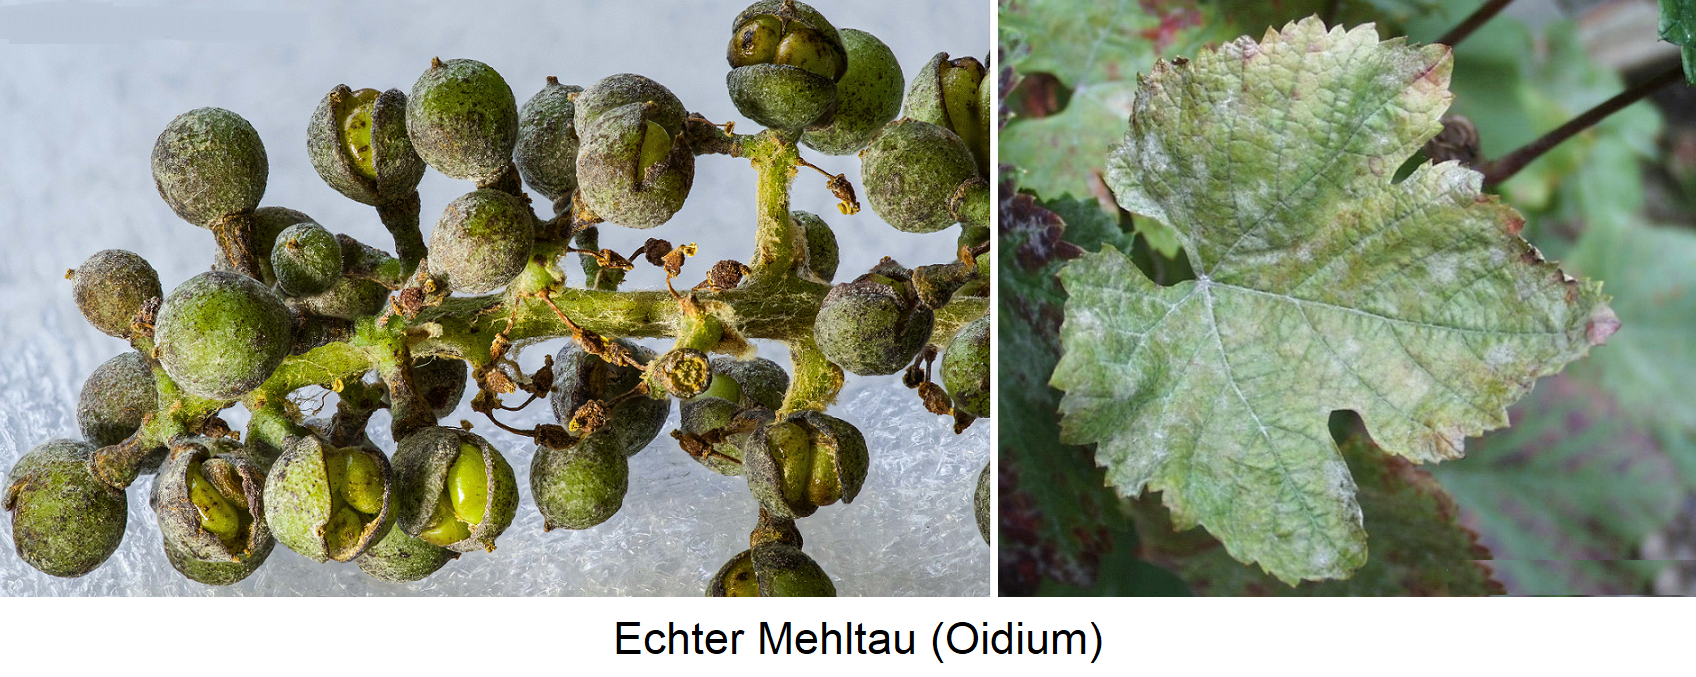 Genuine Merhltau (Oidium) - Symptoms on the grapes and leaf